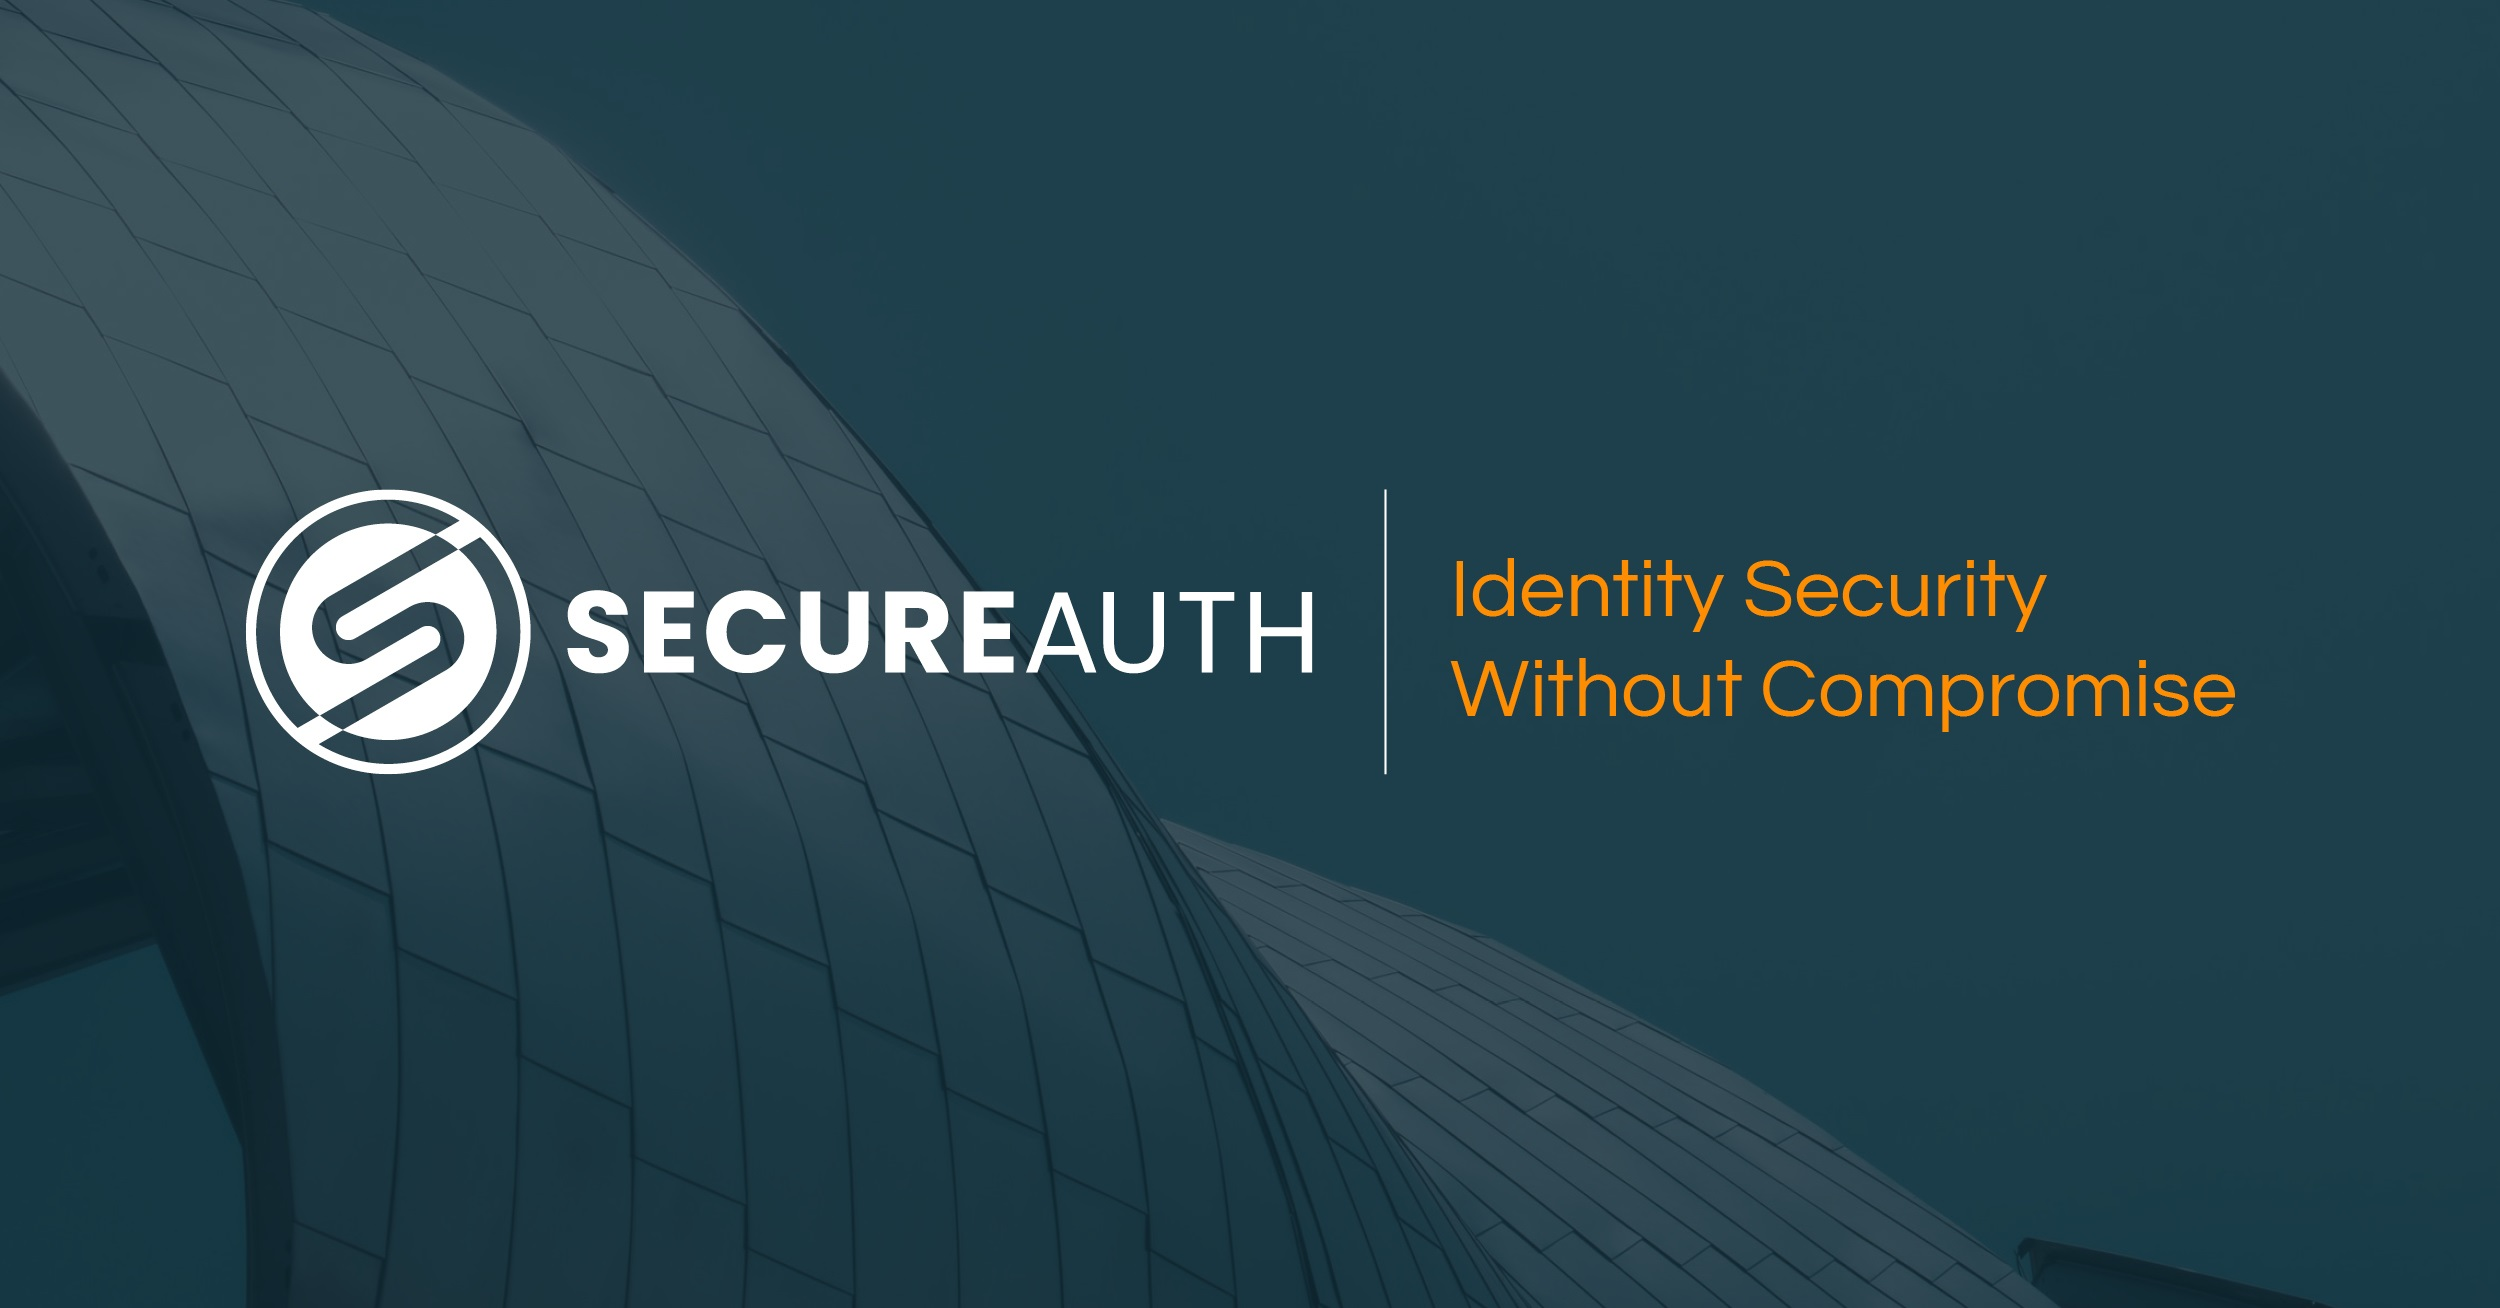 SecureAuth partners with Cyberlinx